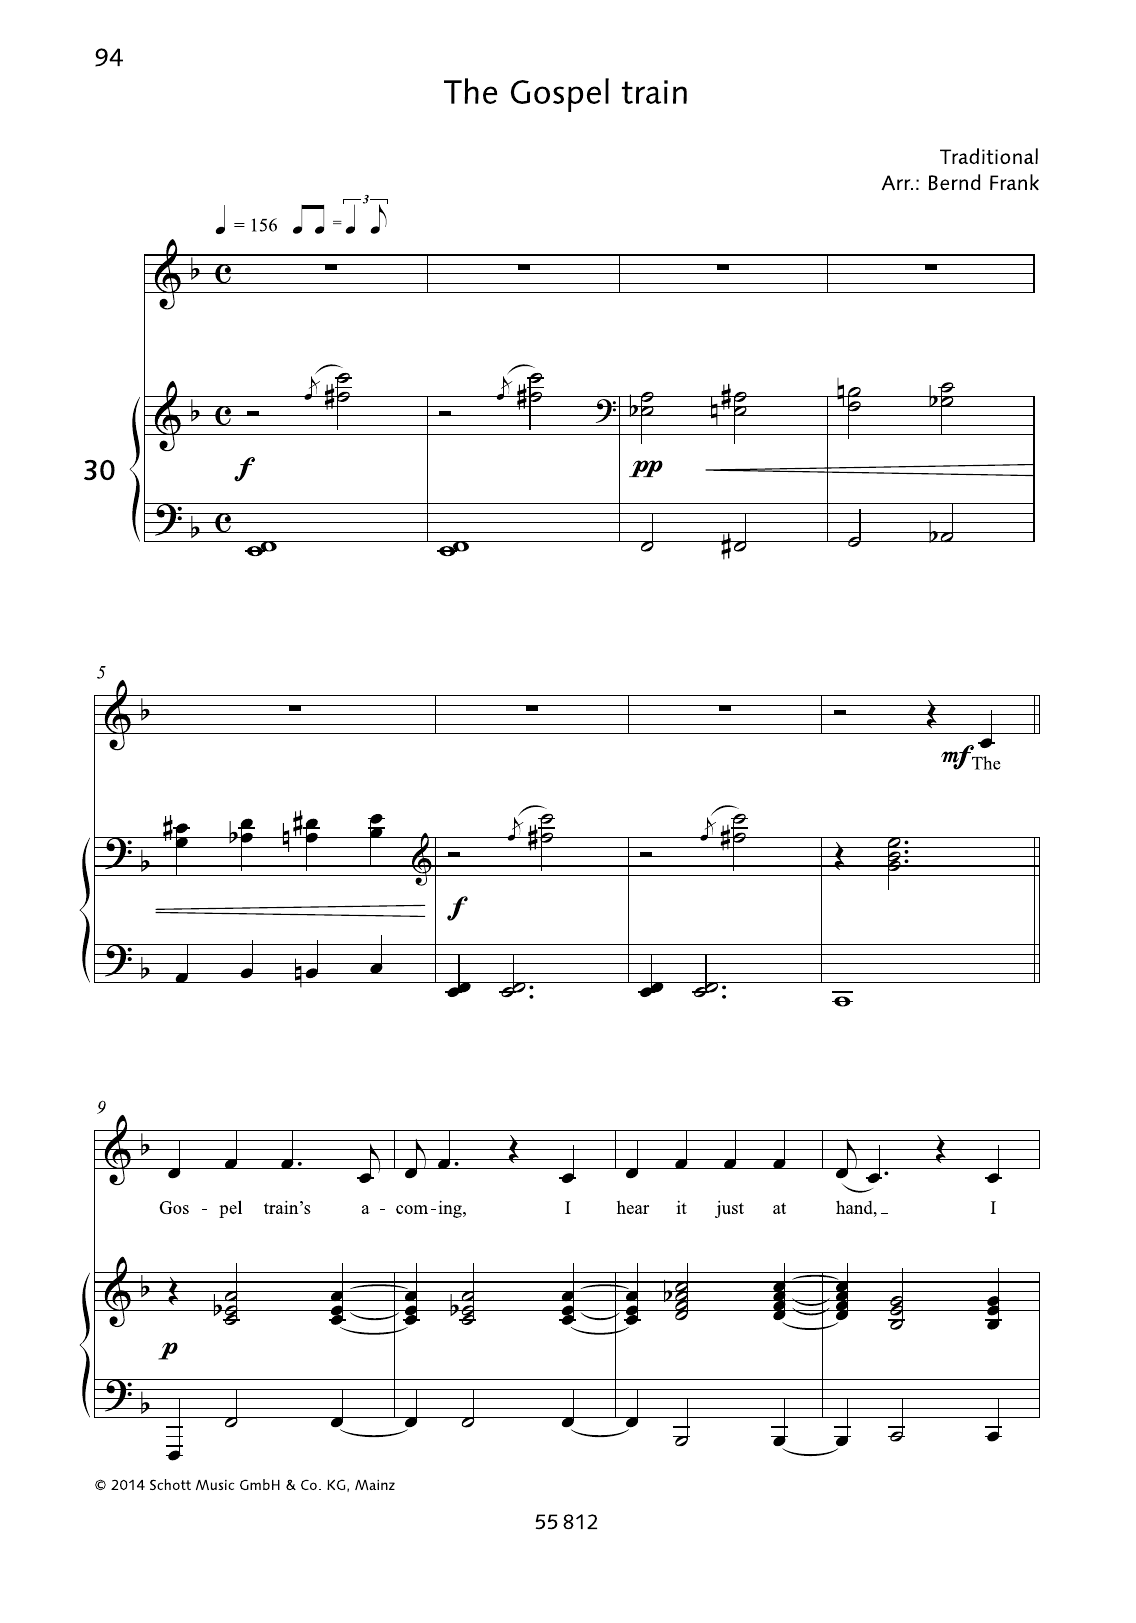 Bernd Frank The Gospel Train sheet music notes and chords. Download Printable PDF.